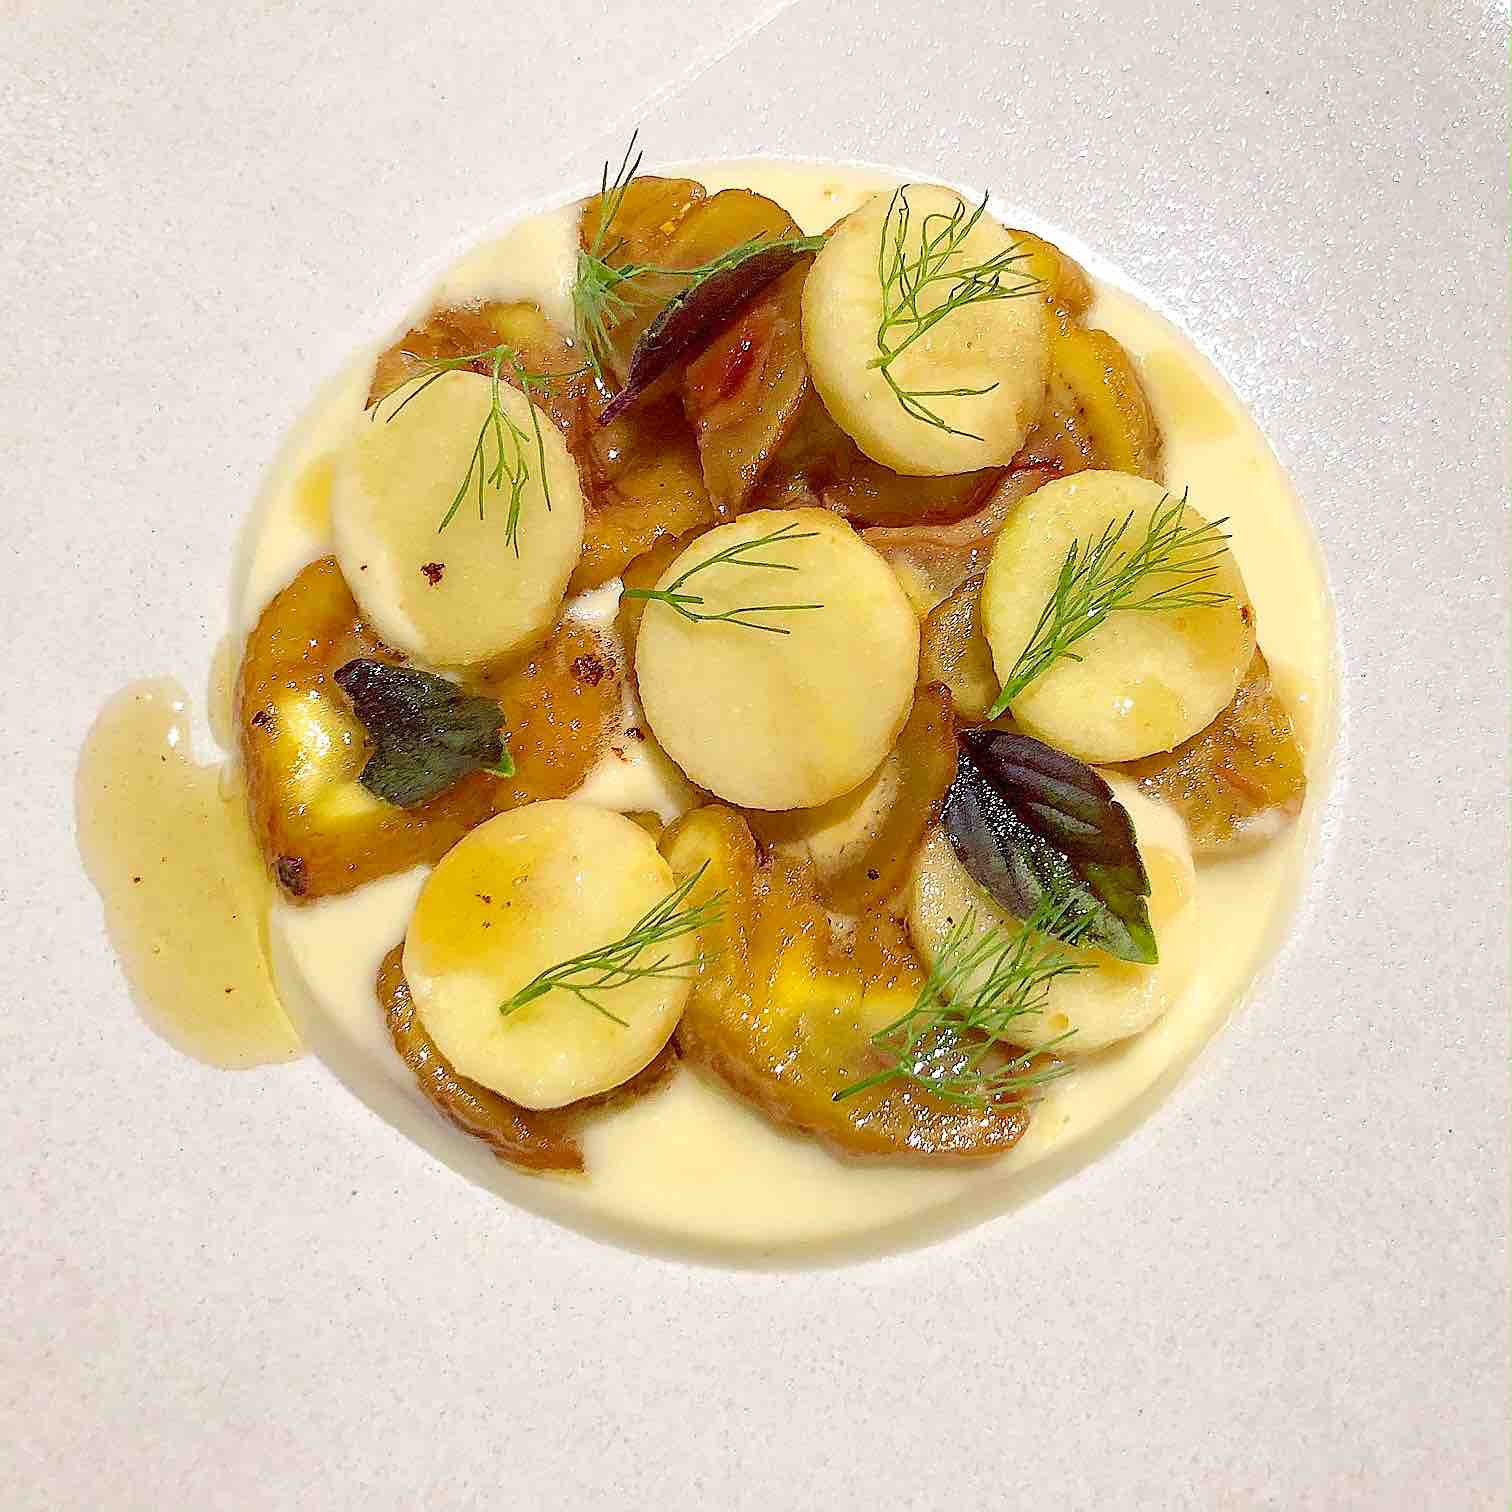 Chestnut, apple and Fennel